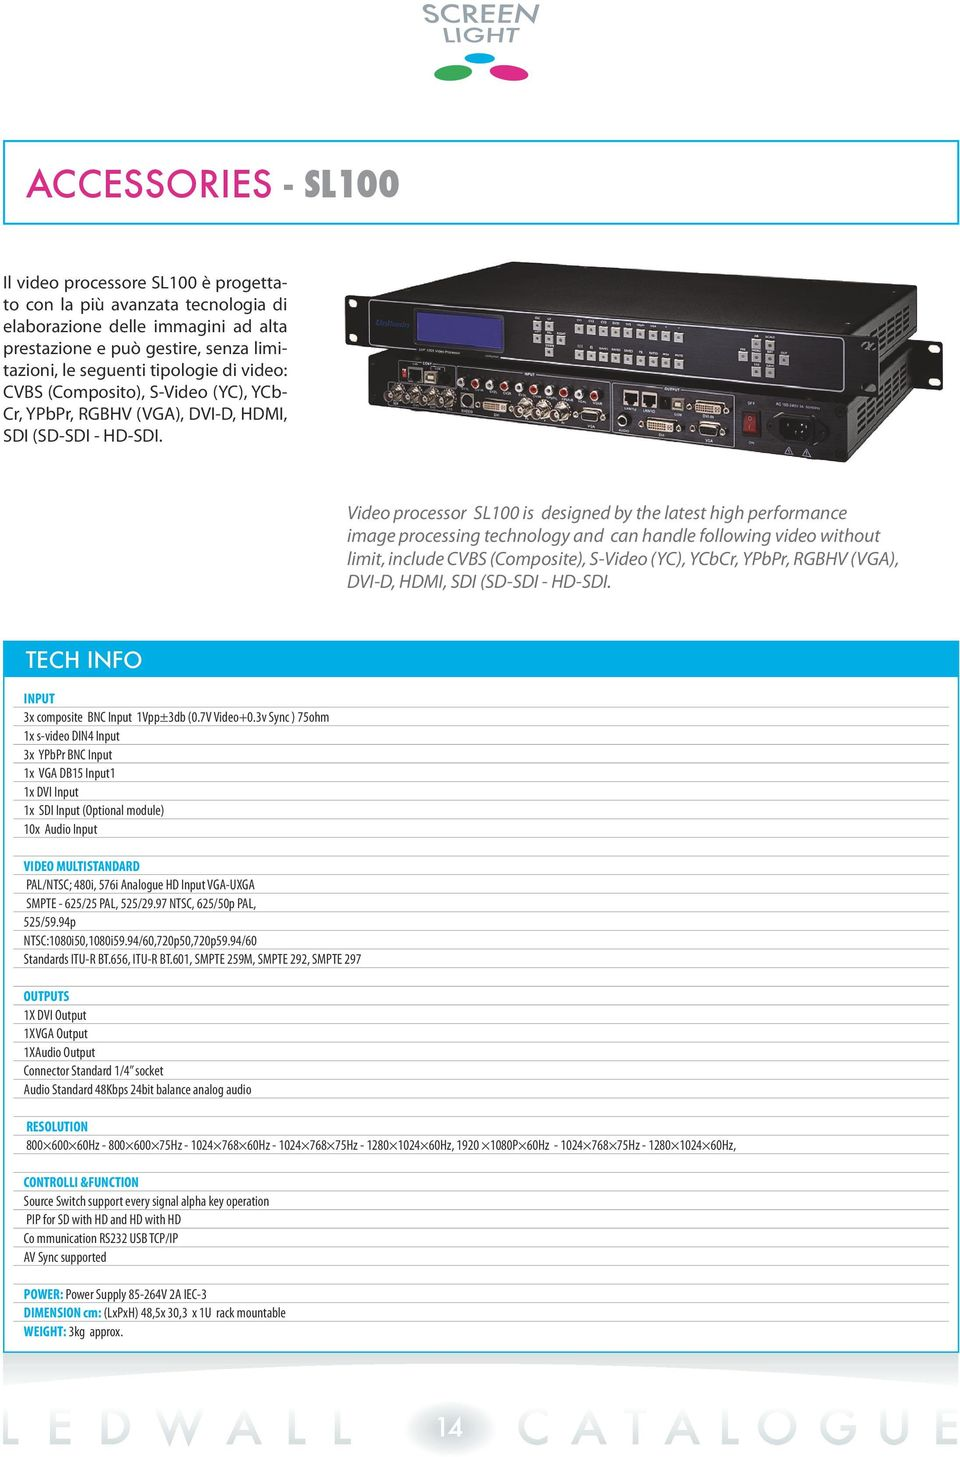 Video processor SL100 is designed by the latest high performance image processing technology and can handle following video without limit, include CVBS (Composite), S-Video (YC), YCbCr, YPbPr, RGBHV